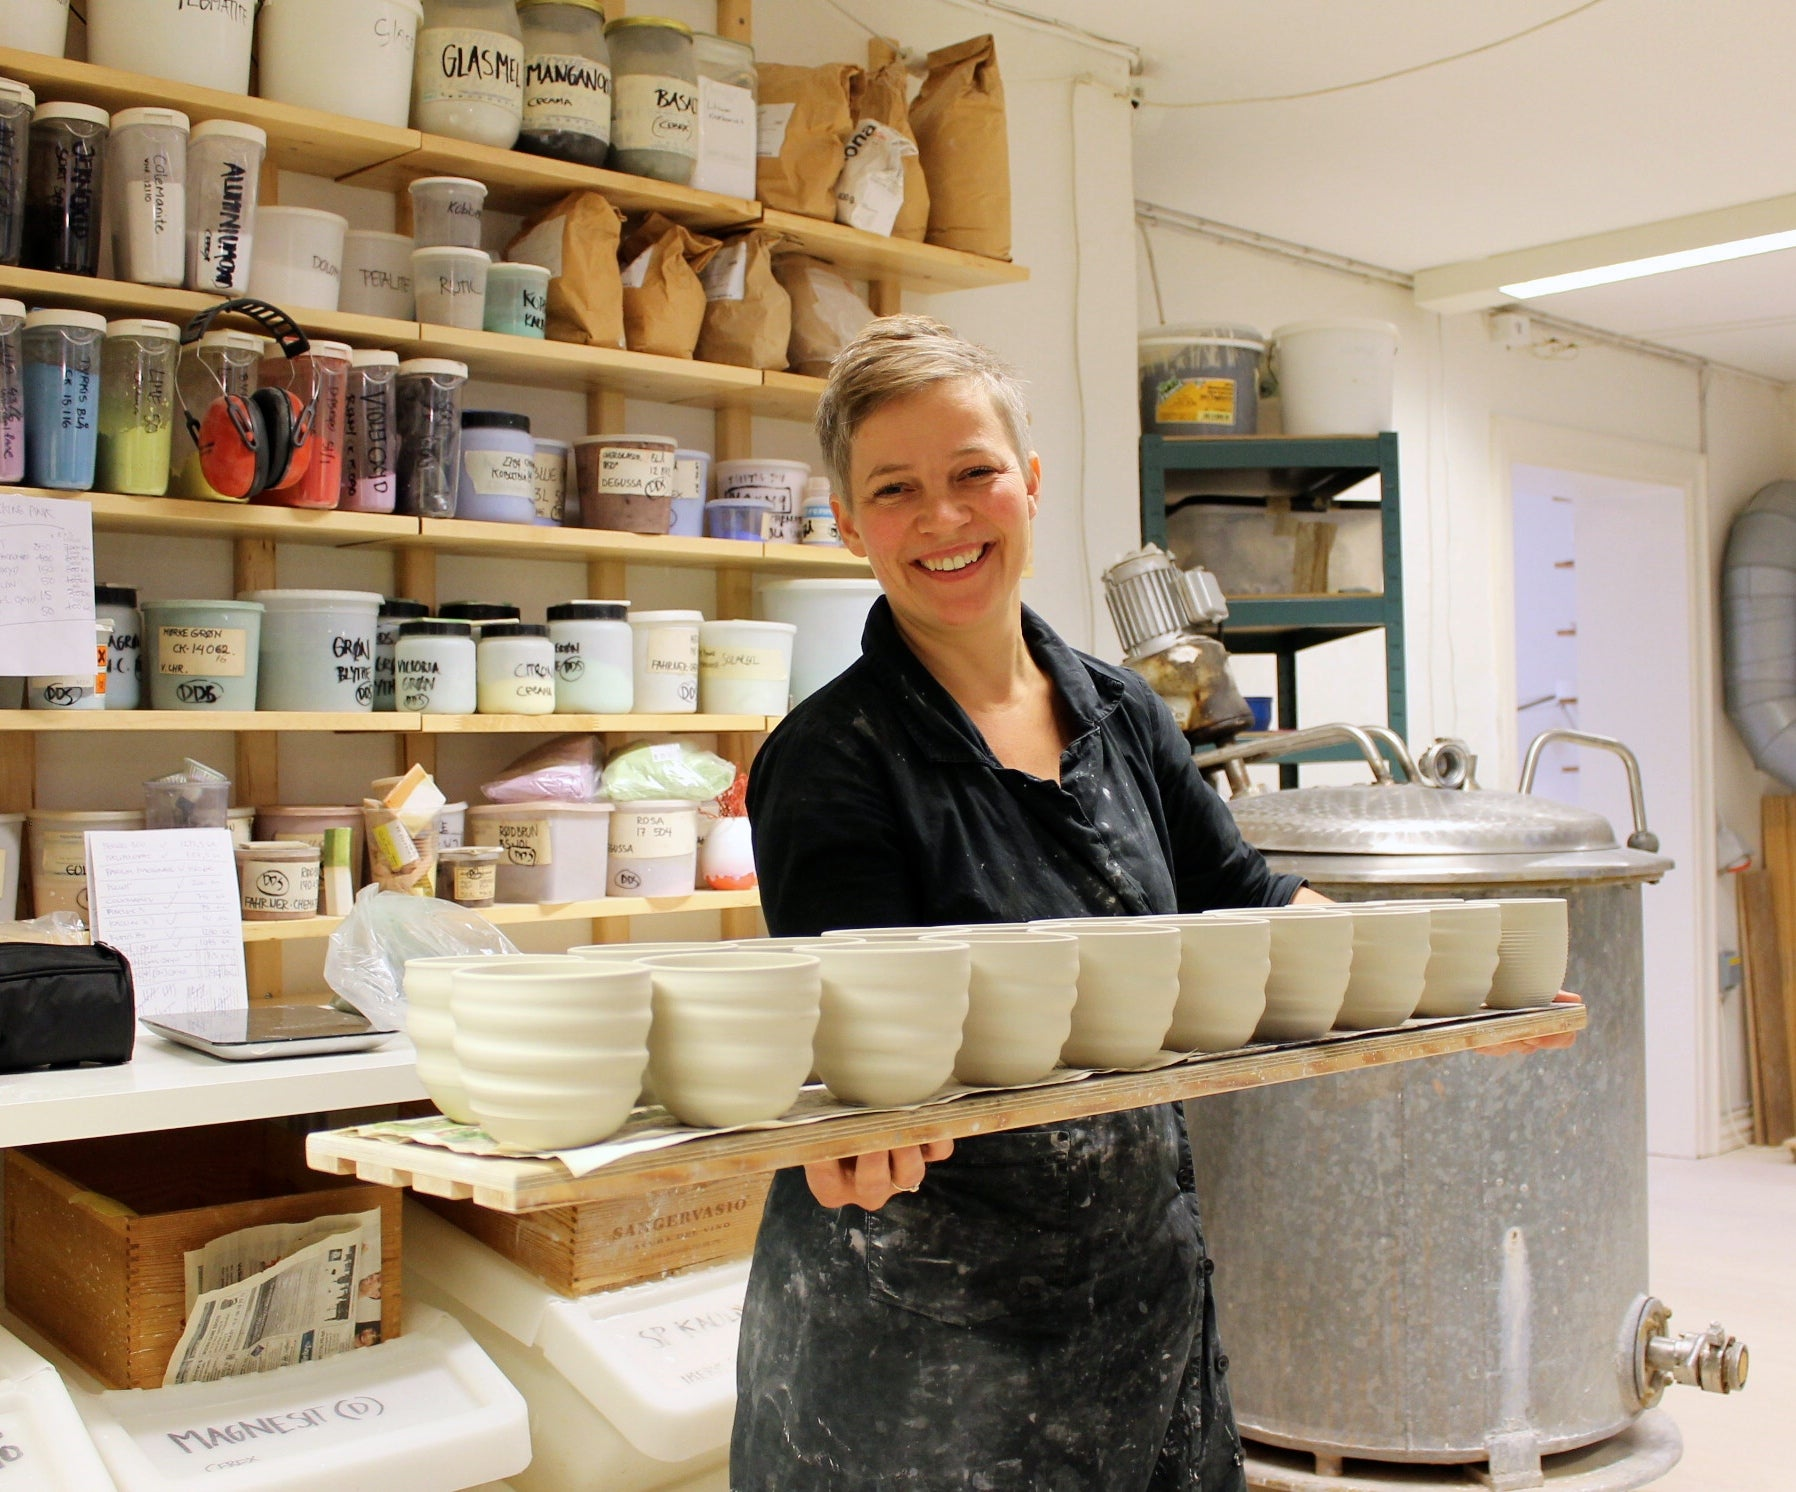 Sussi Krull stands with handmade Songlines cups in the ceramics shop on Willemoesgade 13.